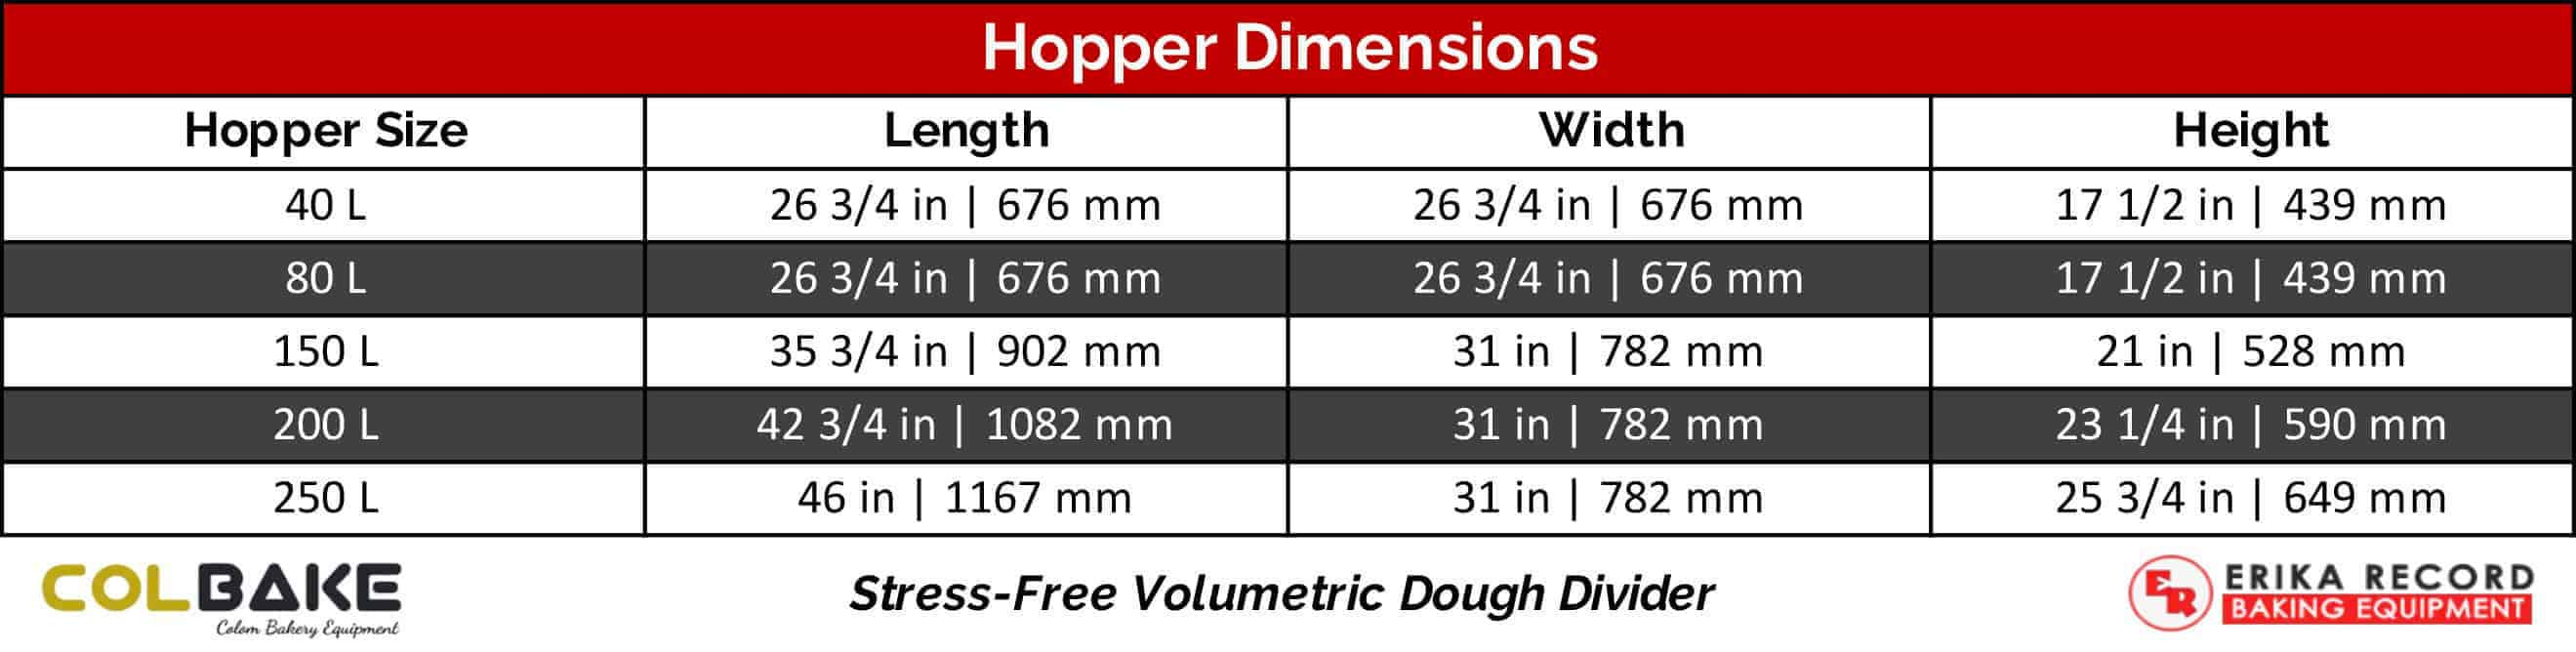 Colbake Volumetric Dough Divider Hopper Dimensions